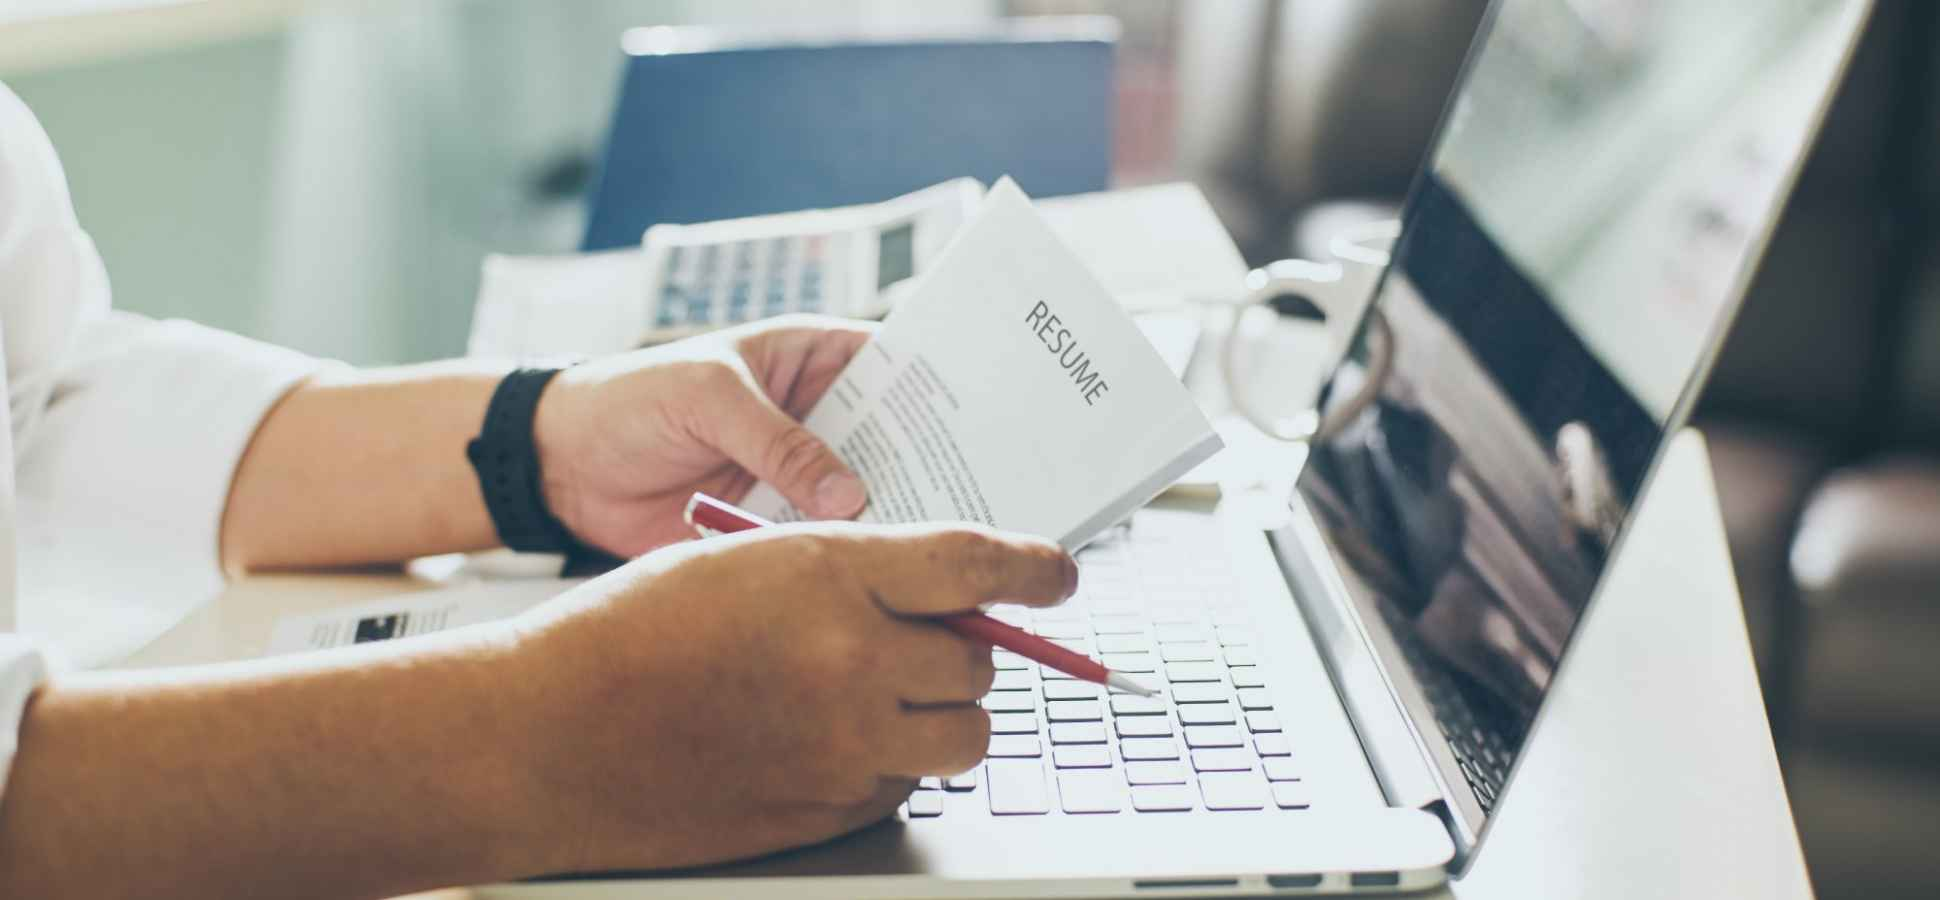 3 Things Smart Employers Look For In A Resume   Inc.com